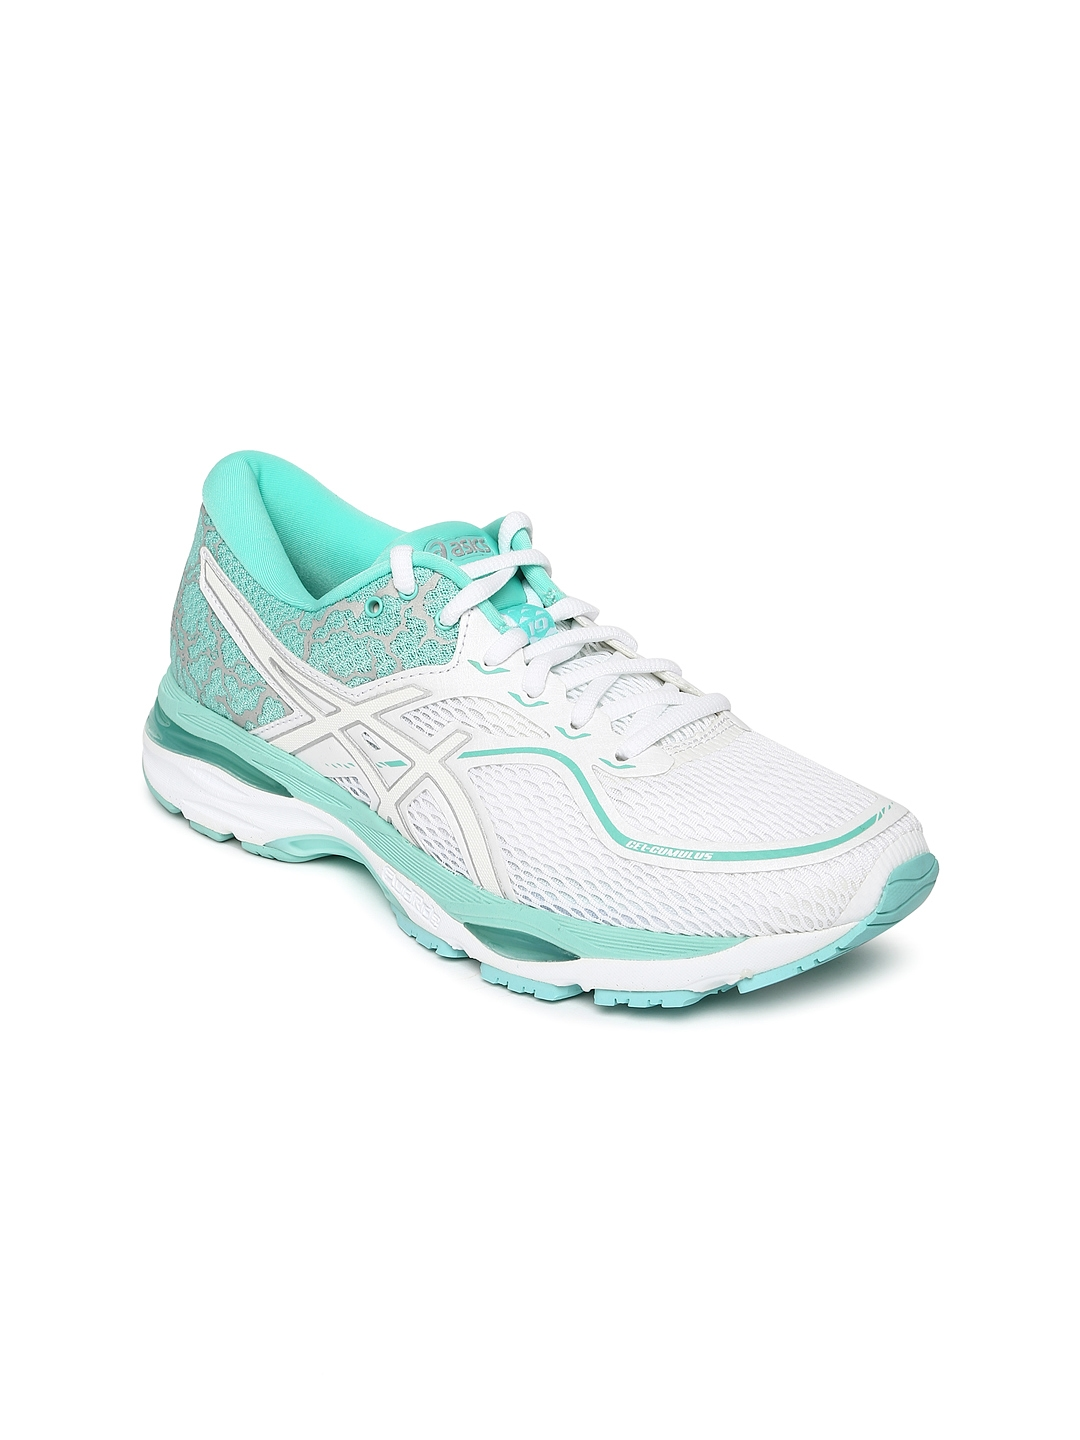 Cumulus Gel Show Running Buy 19 Shoes Asics Lite Women White qxHP1O